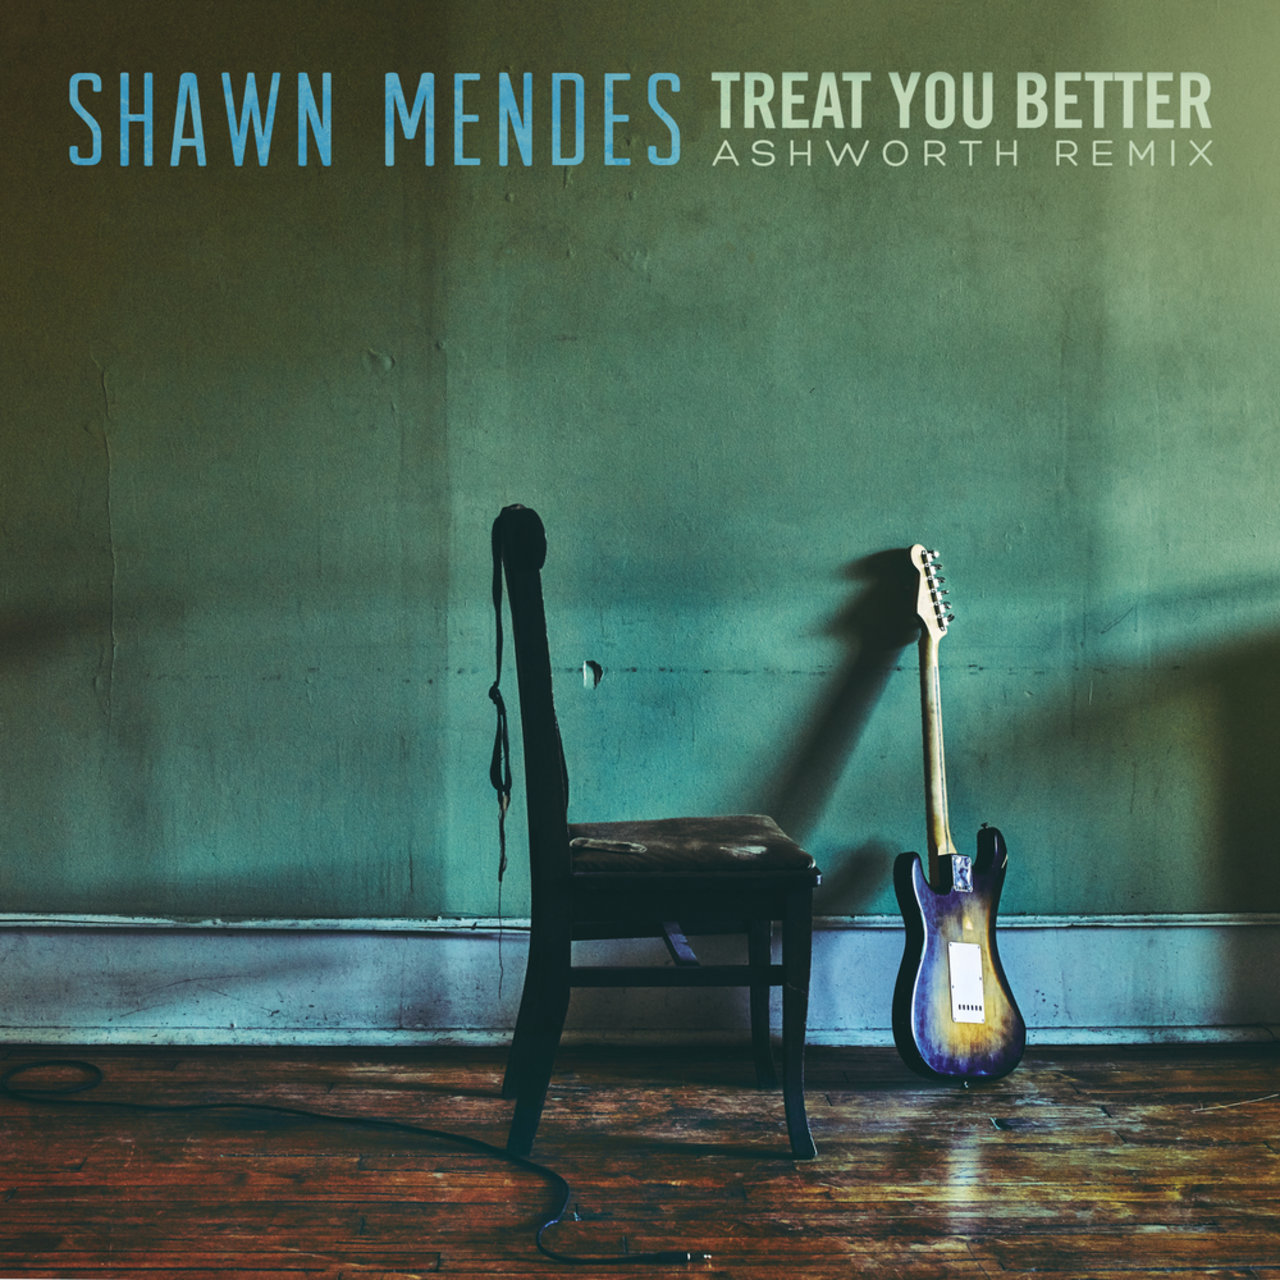 Treat You Better (Ashworth Remix)